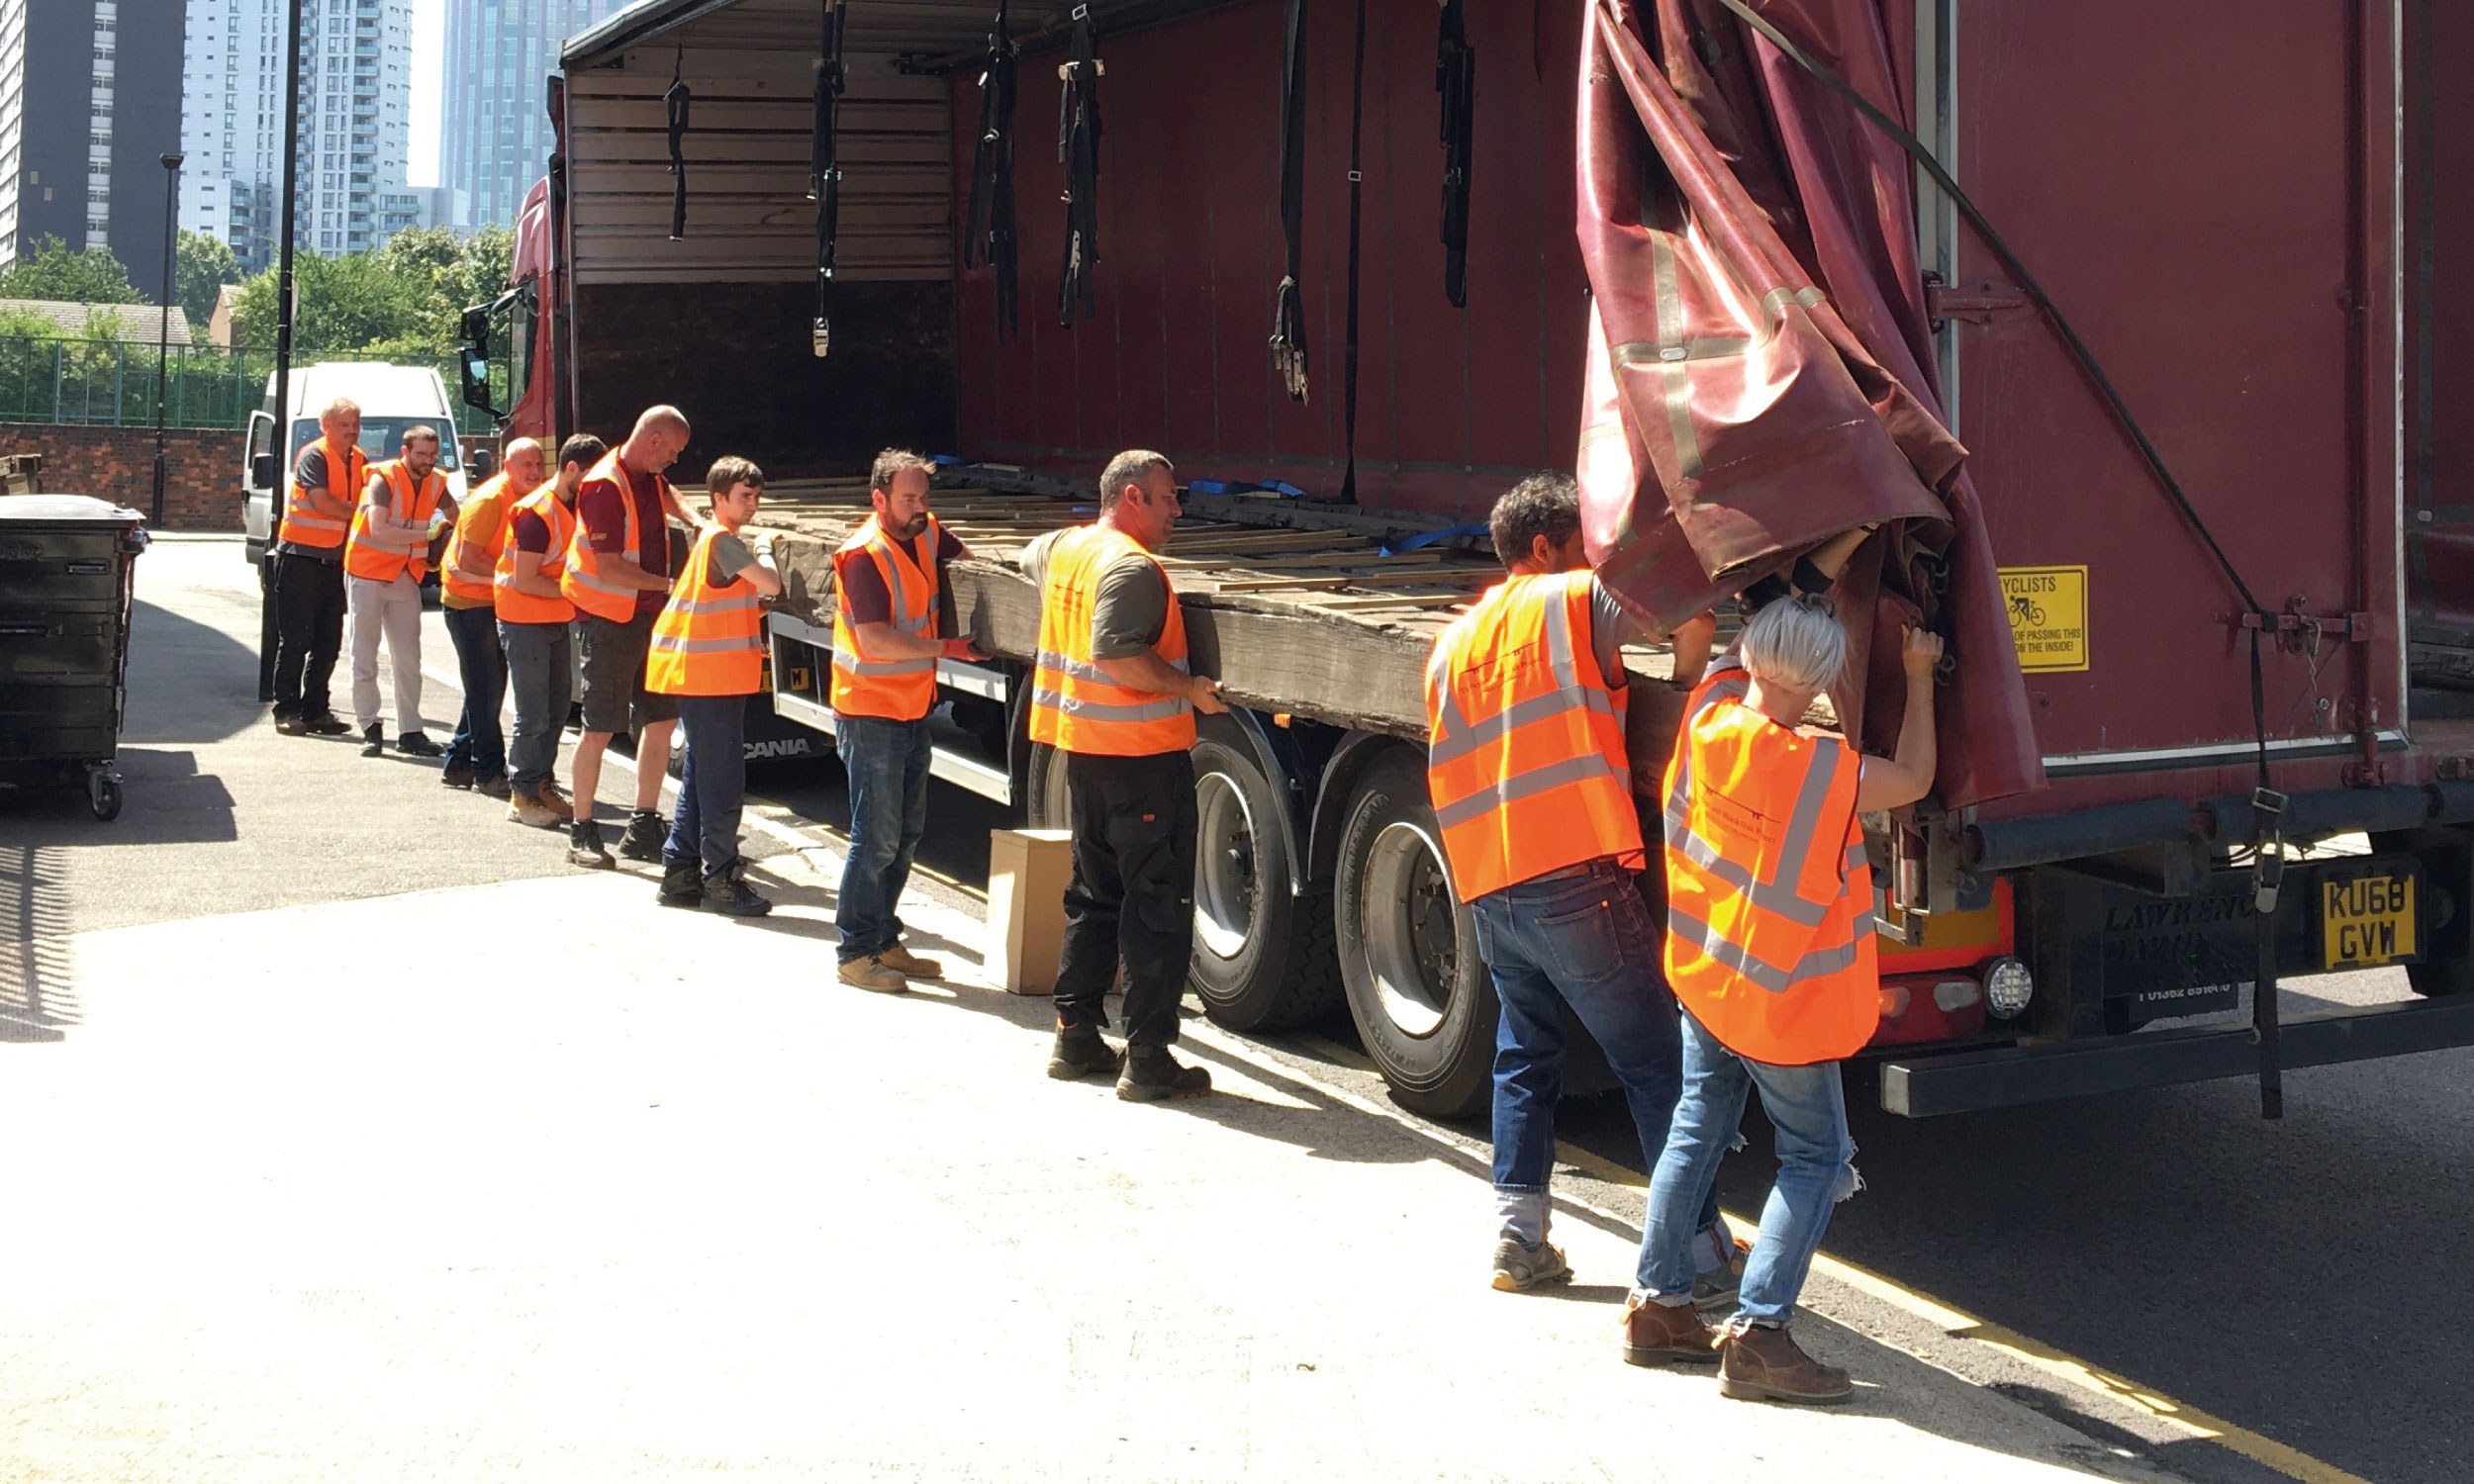 The 10 planks arrive in London